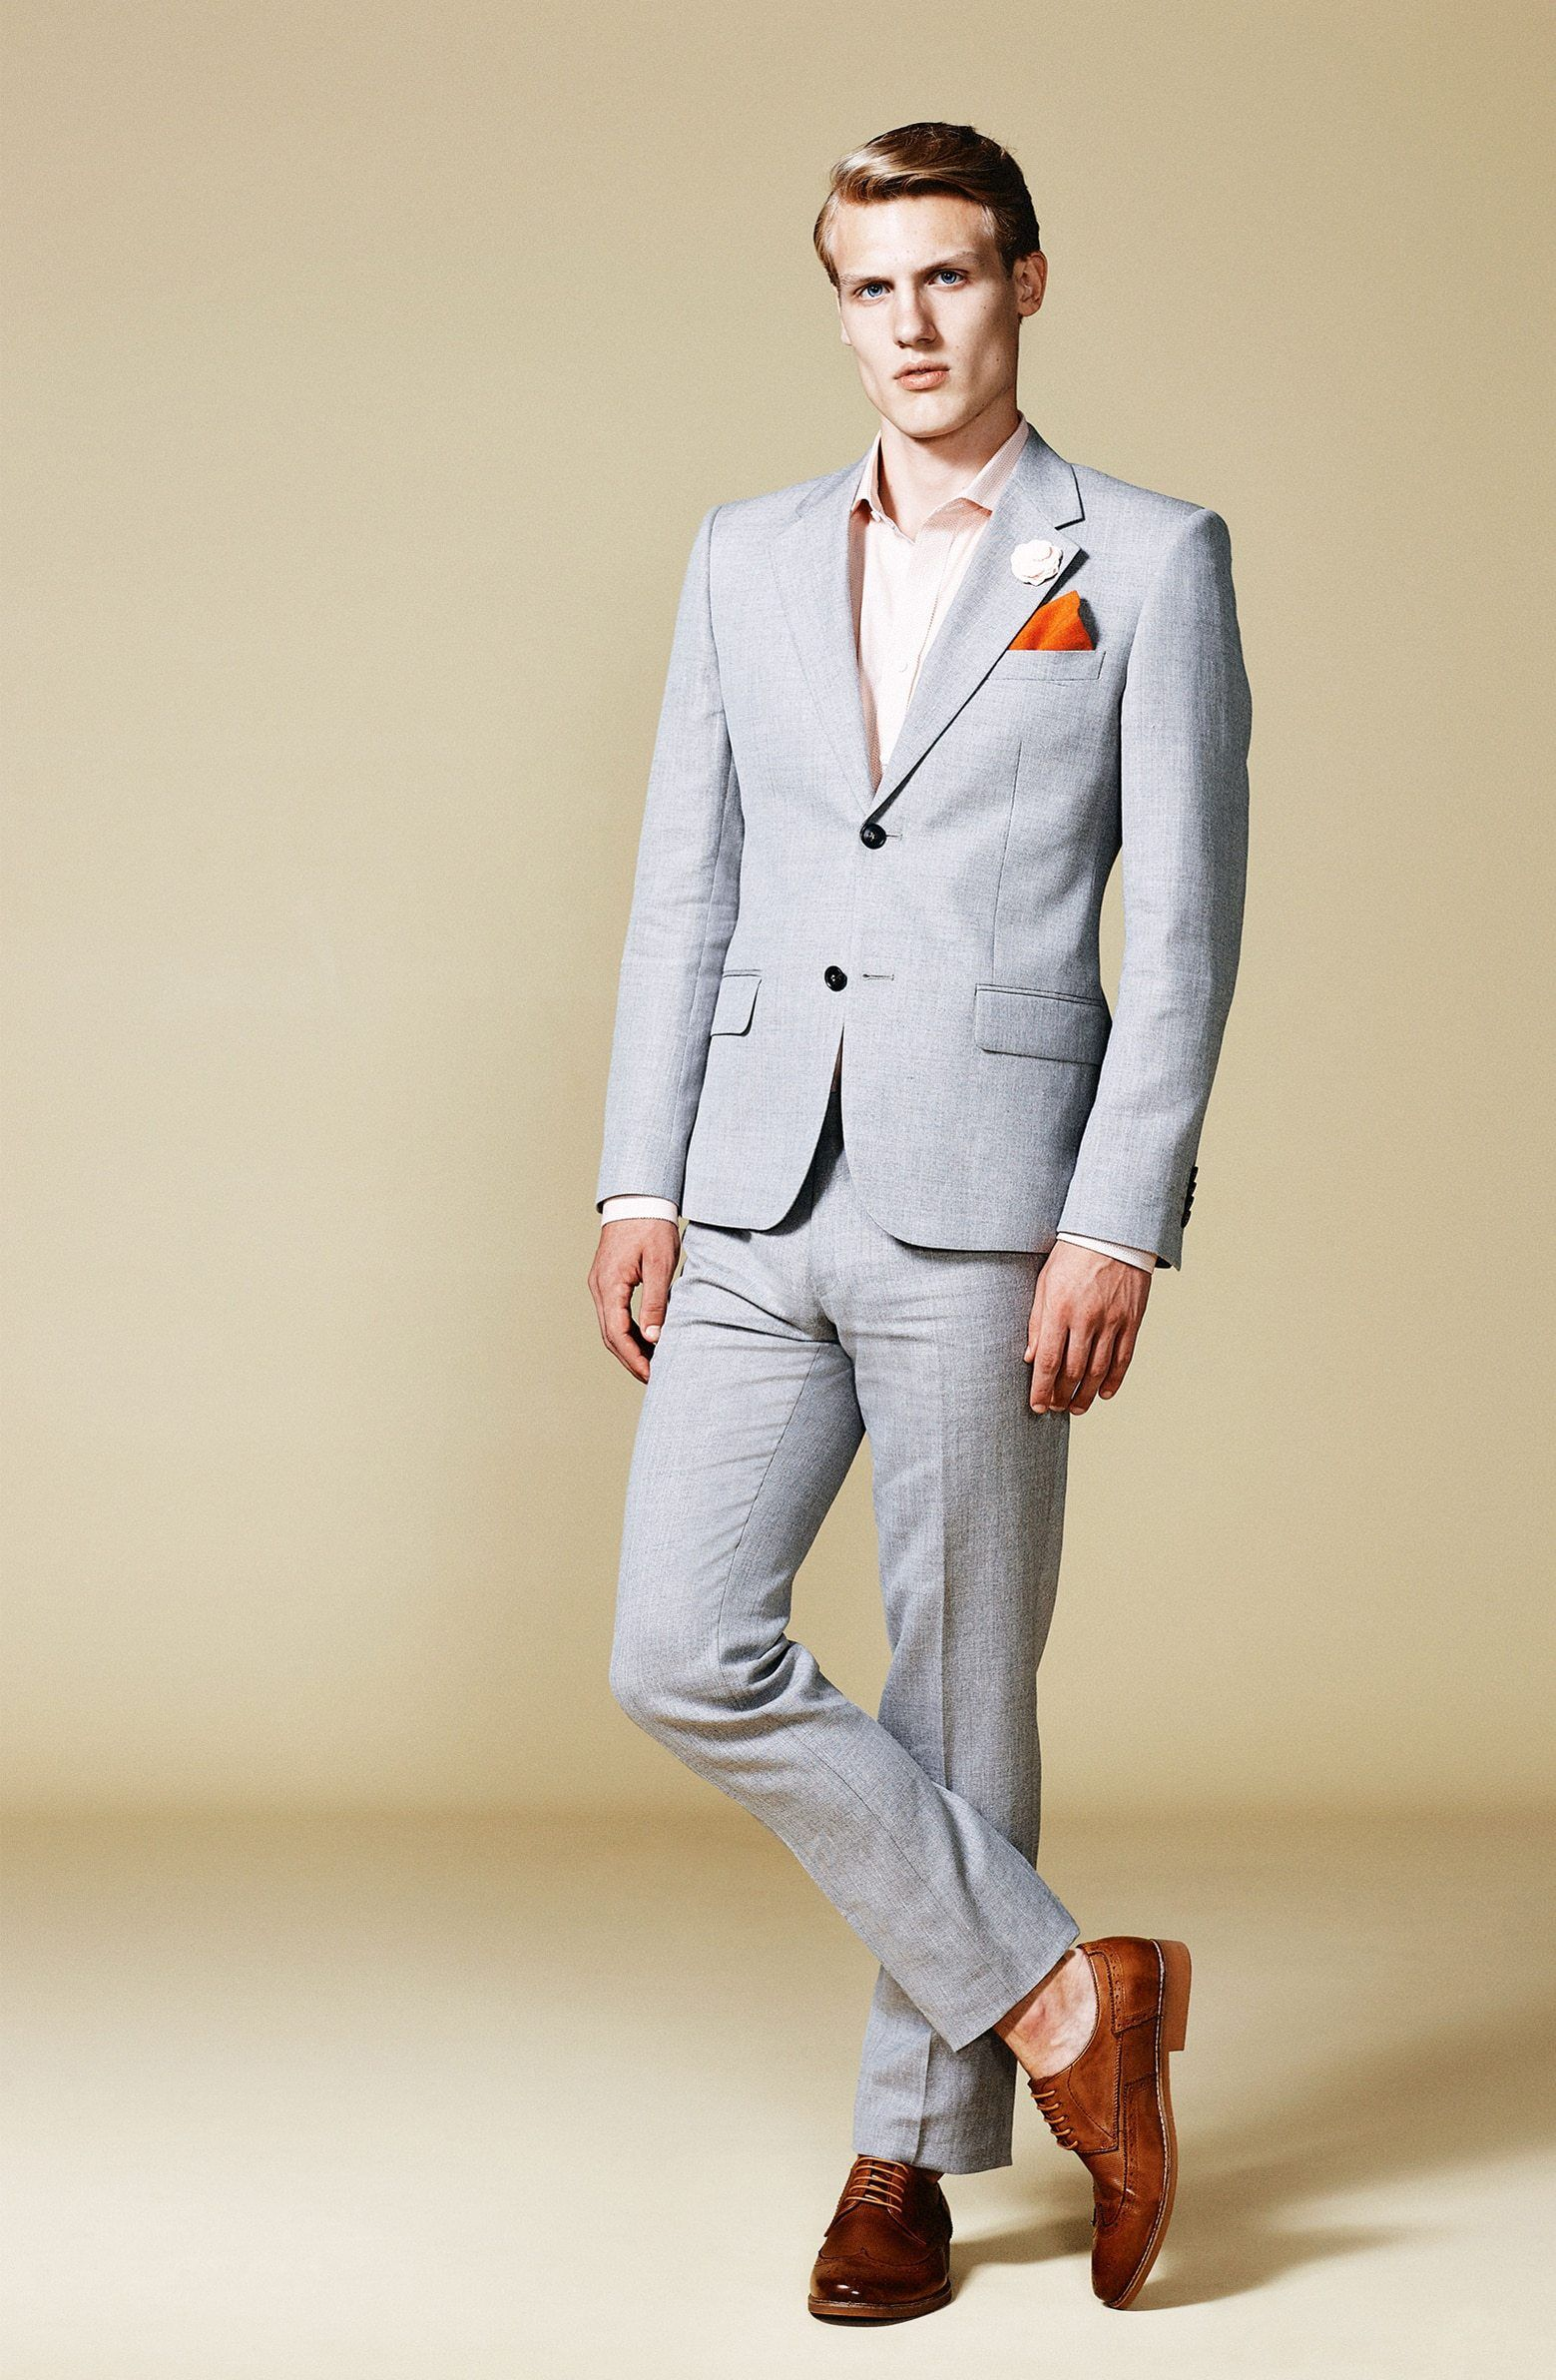 d9652a07777f Wedding Attire for Men: The Complete Guide for 2019 | insp. ⟶ semi ...